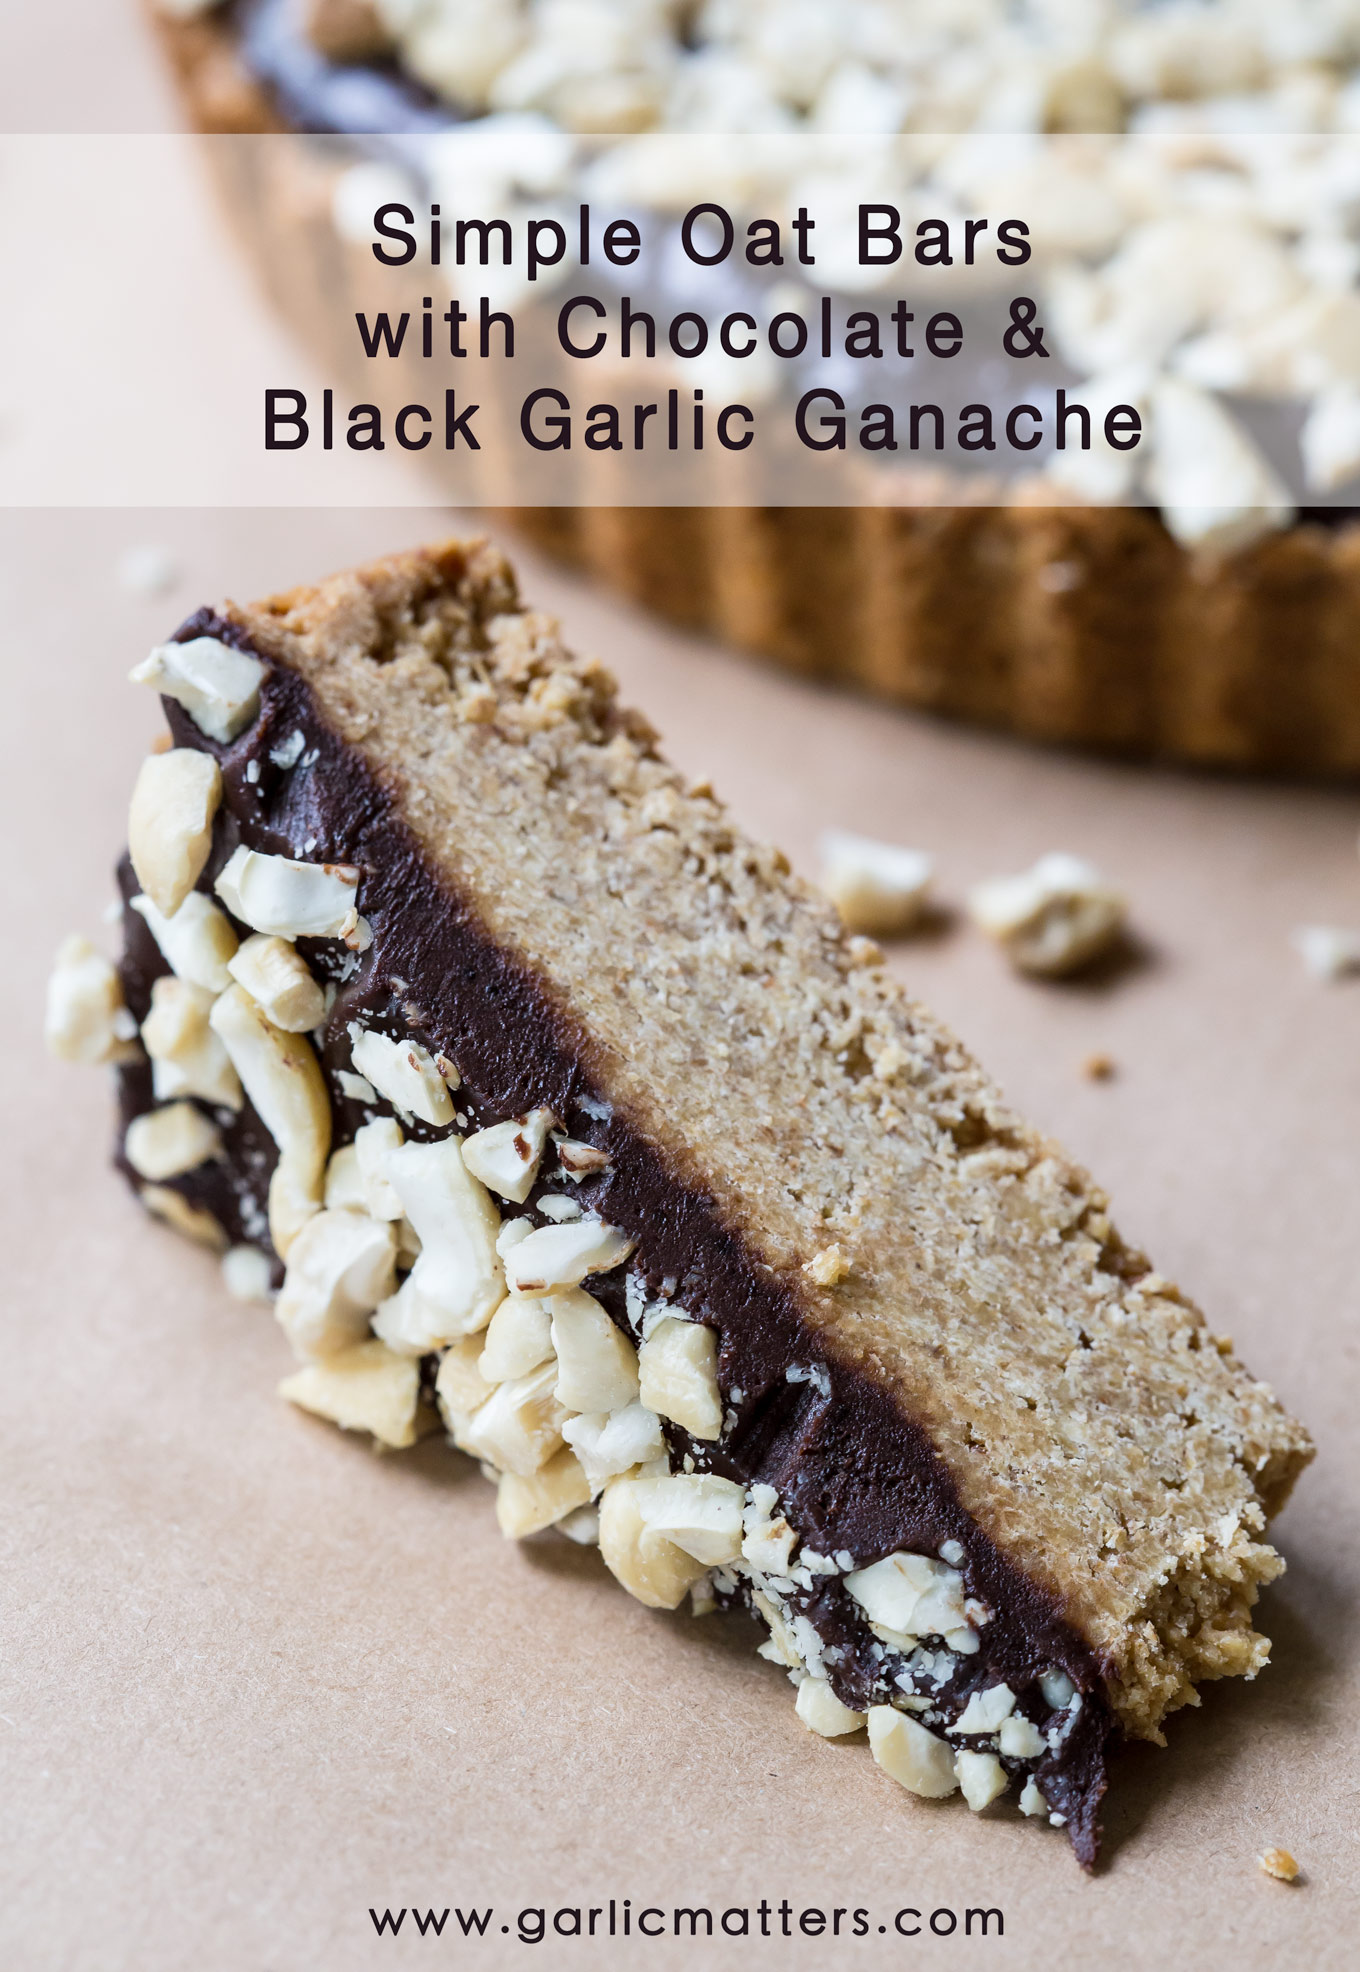 Simple Oat Bars with Chocolate and Black Garlic Ganache - energy booster, delicious snack to go for breakfast or with a cup of coffee.